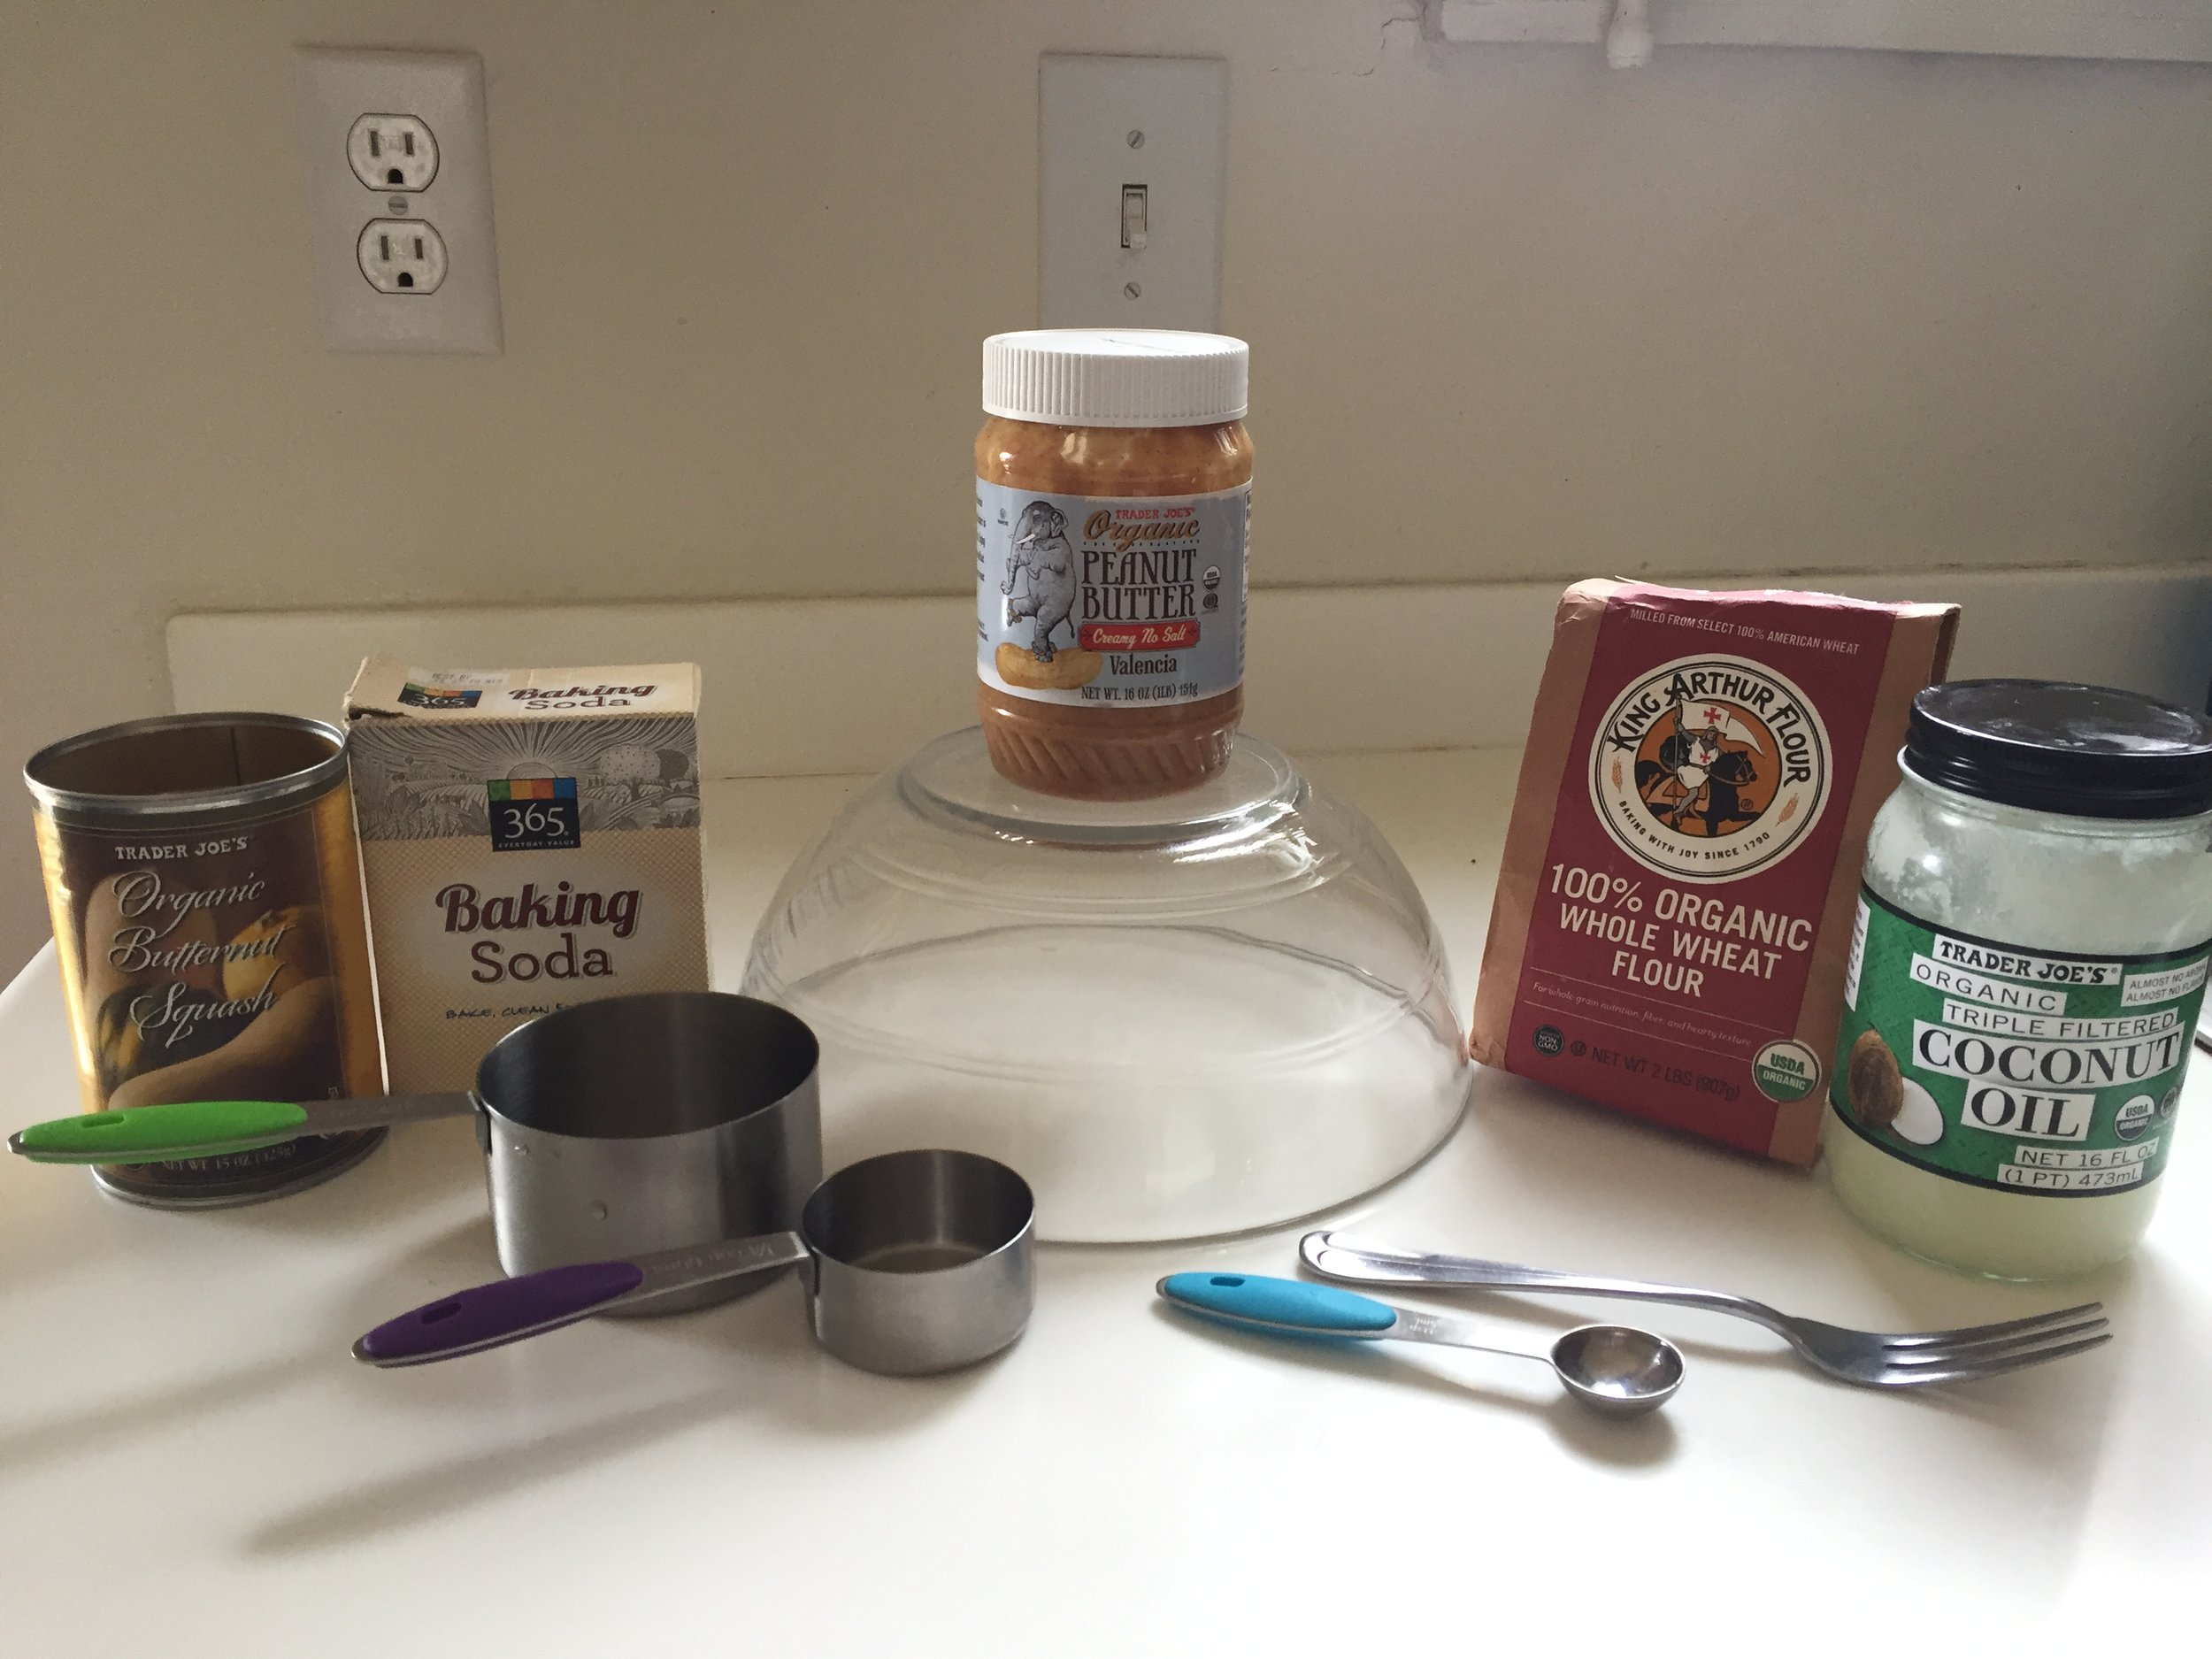 All you need to make these yummy treats! Not sponsored by Trader Joes, I'm just addicted.